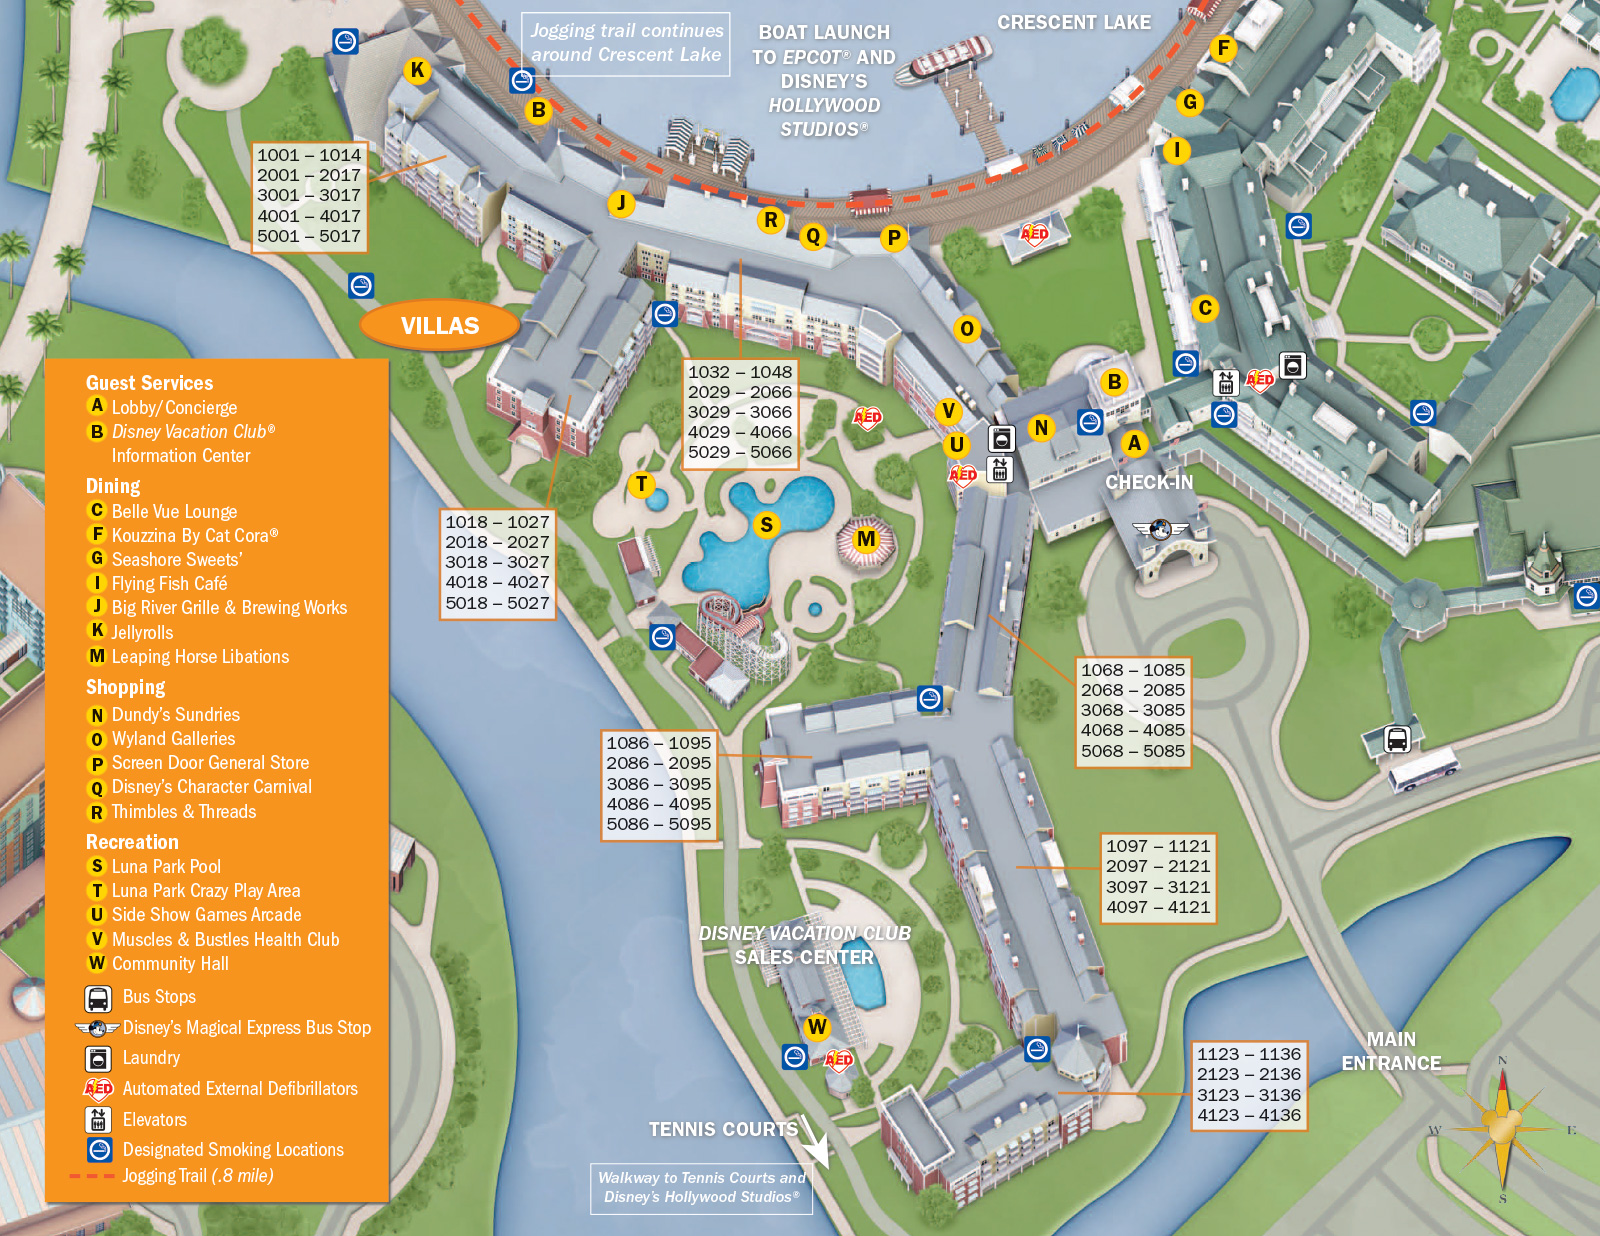 Sheraton Vistana Resort Floor Plans Walt Disney World Deluxe Accommodations Dadfordisney